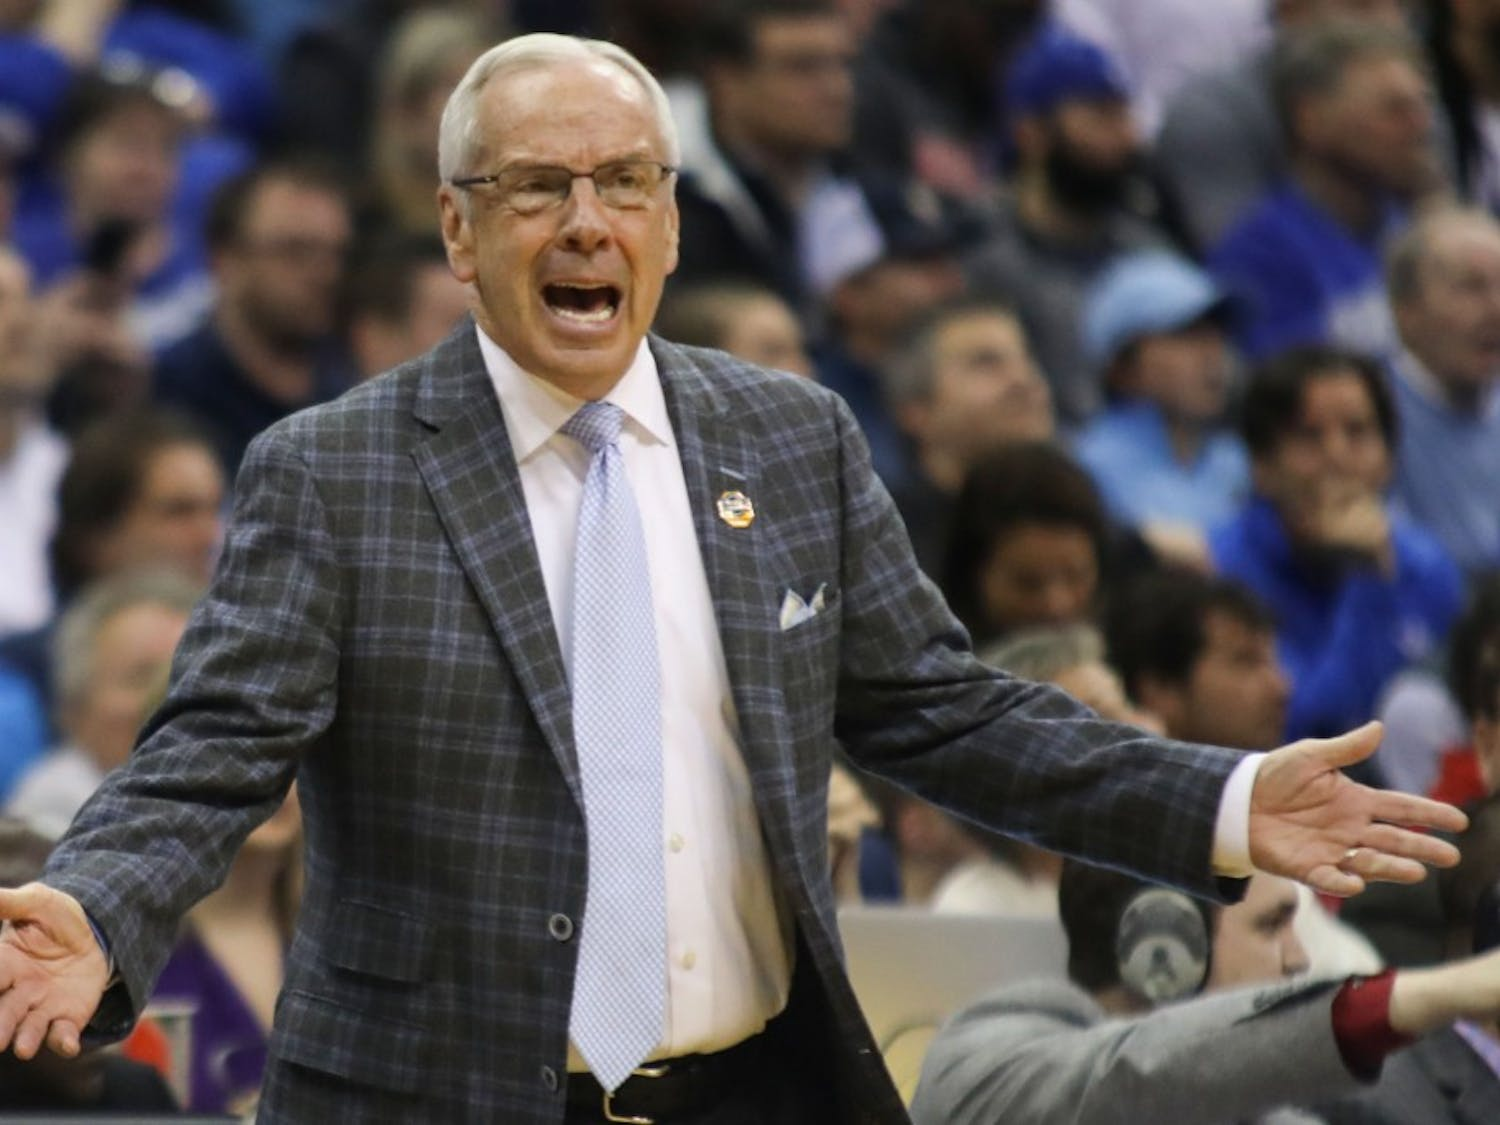 Head Coach Roy Williams yells to players and referees during UNC's 97-80 loss against Auburn in the Sweet 16 of the NCAA Tournament on Friday, March 29, 2019 at the Sprint Center in Kansas City, M.O.